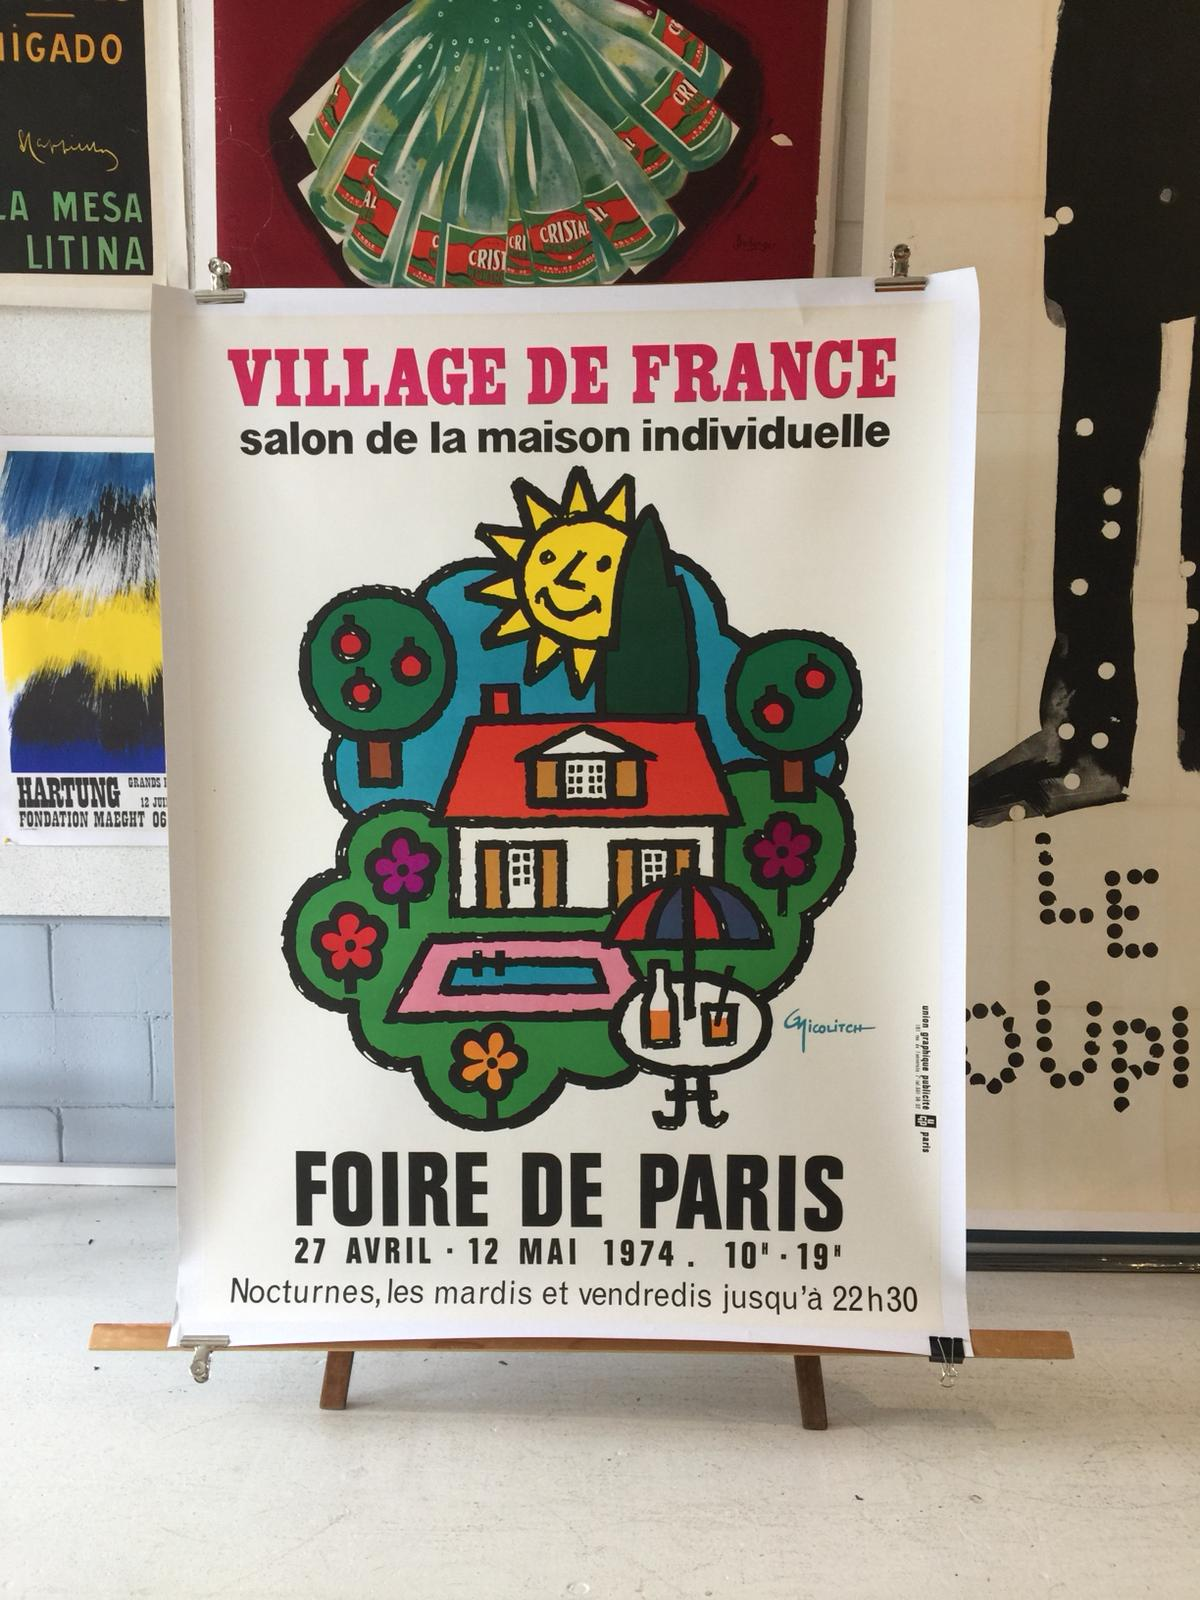 Foire de Paris Village de France